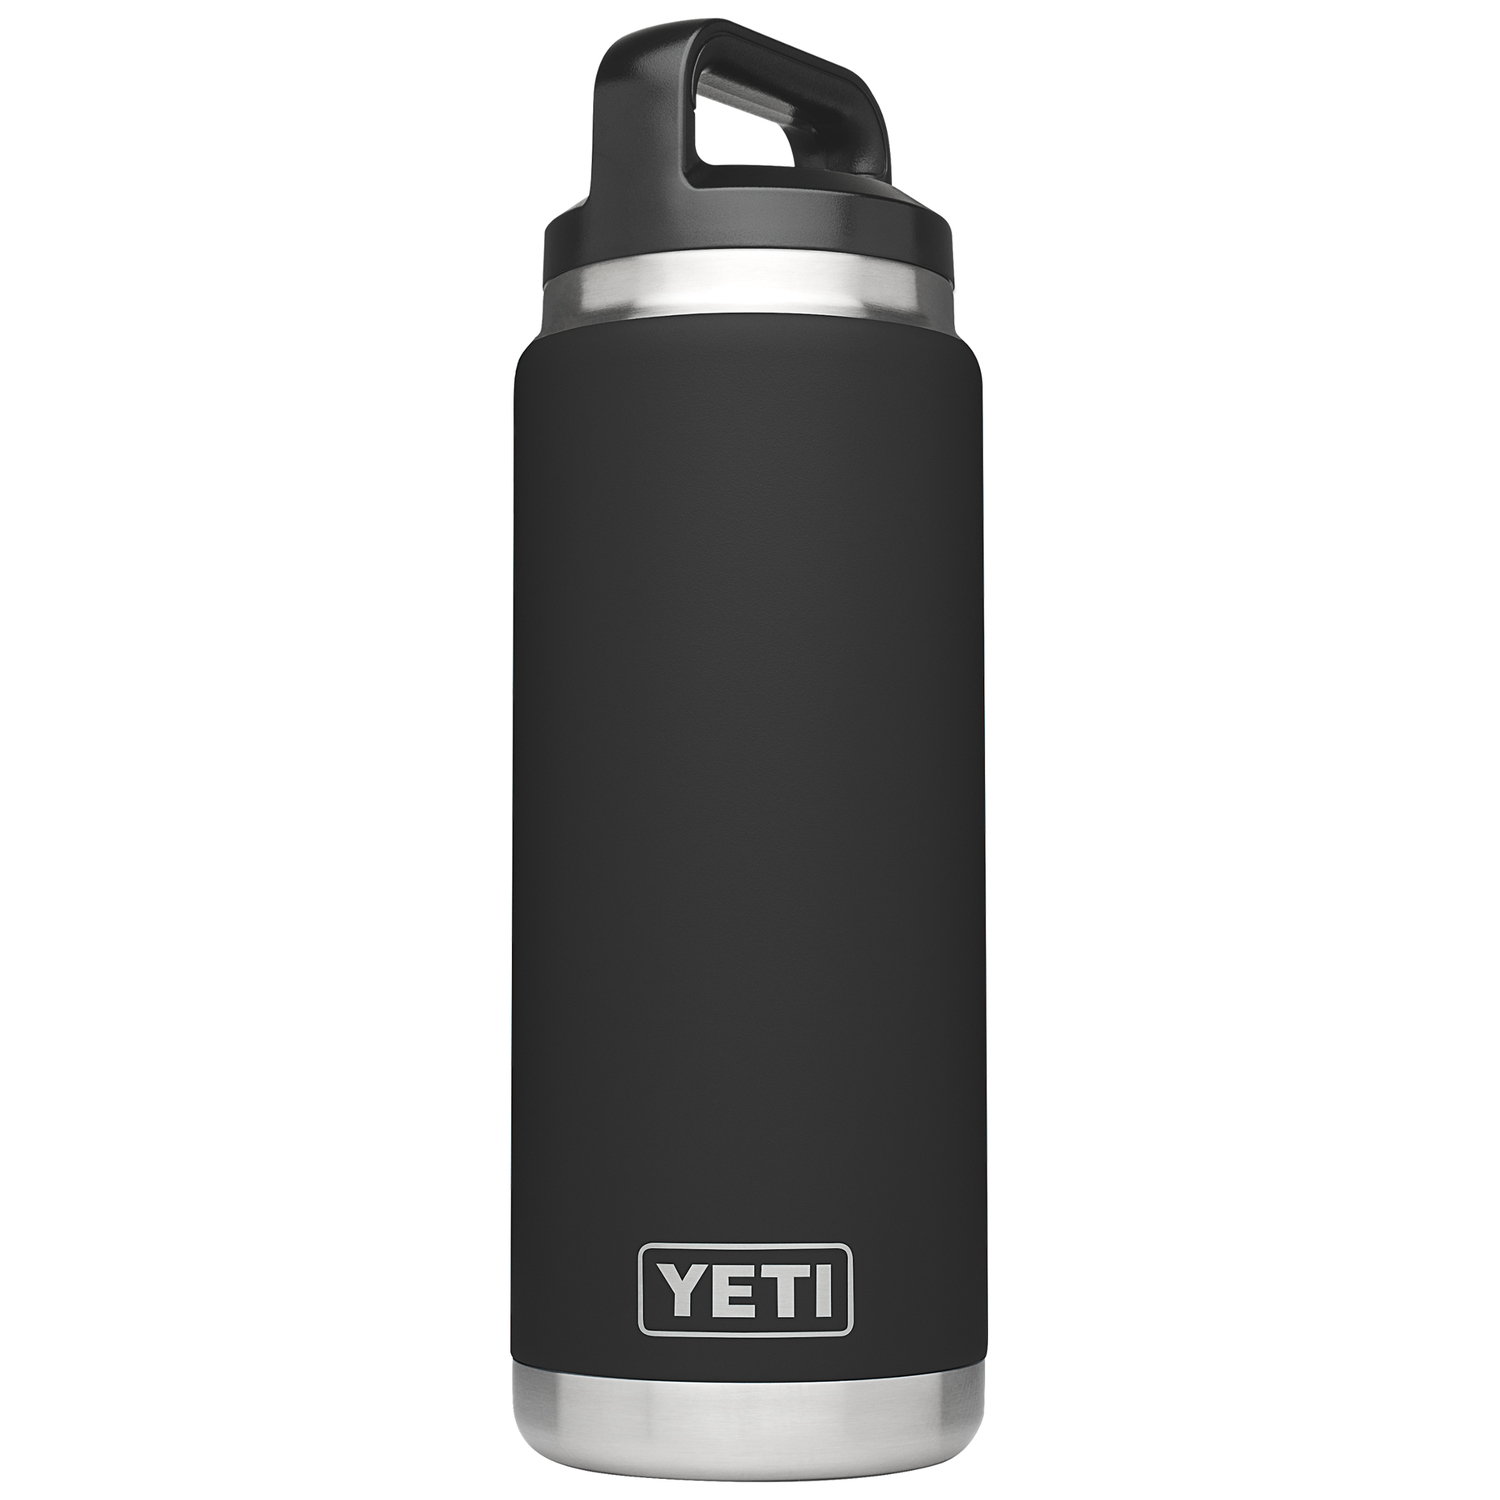 YETI  Rambler  Black  Insulated Bottle  26 oz. Stainless Steel  BPA Free